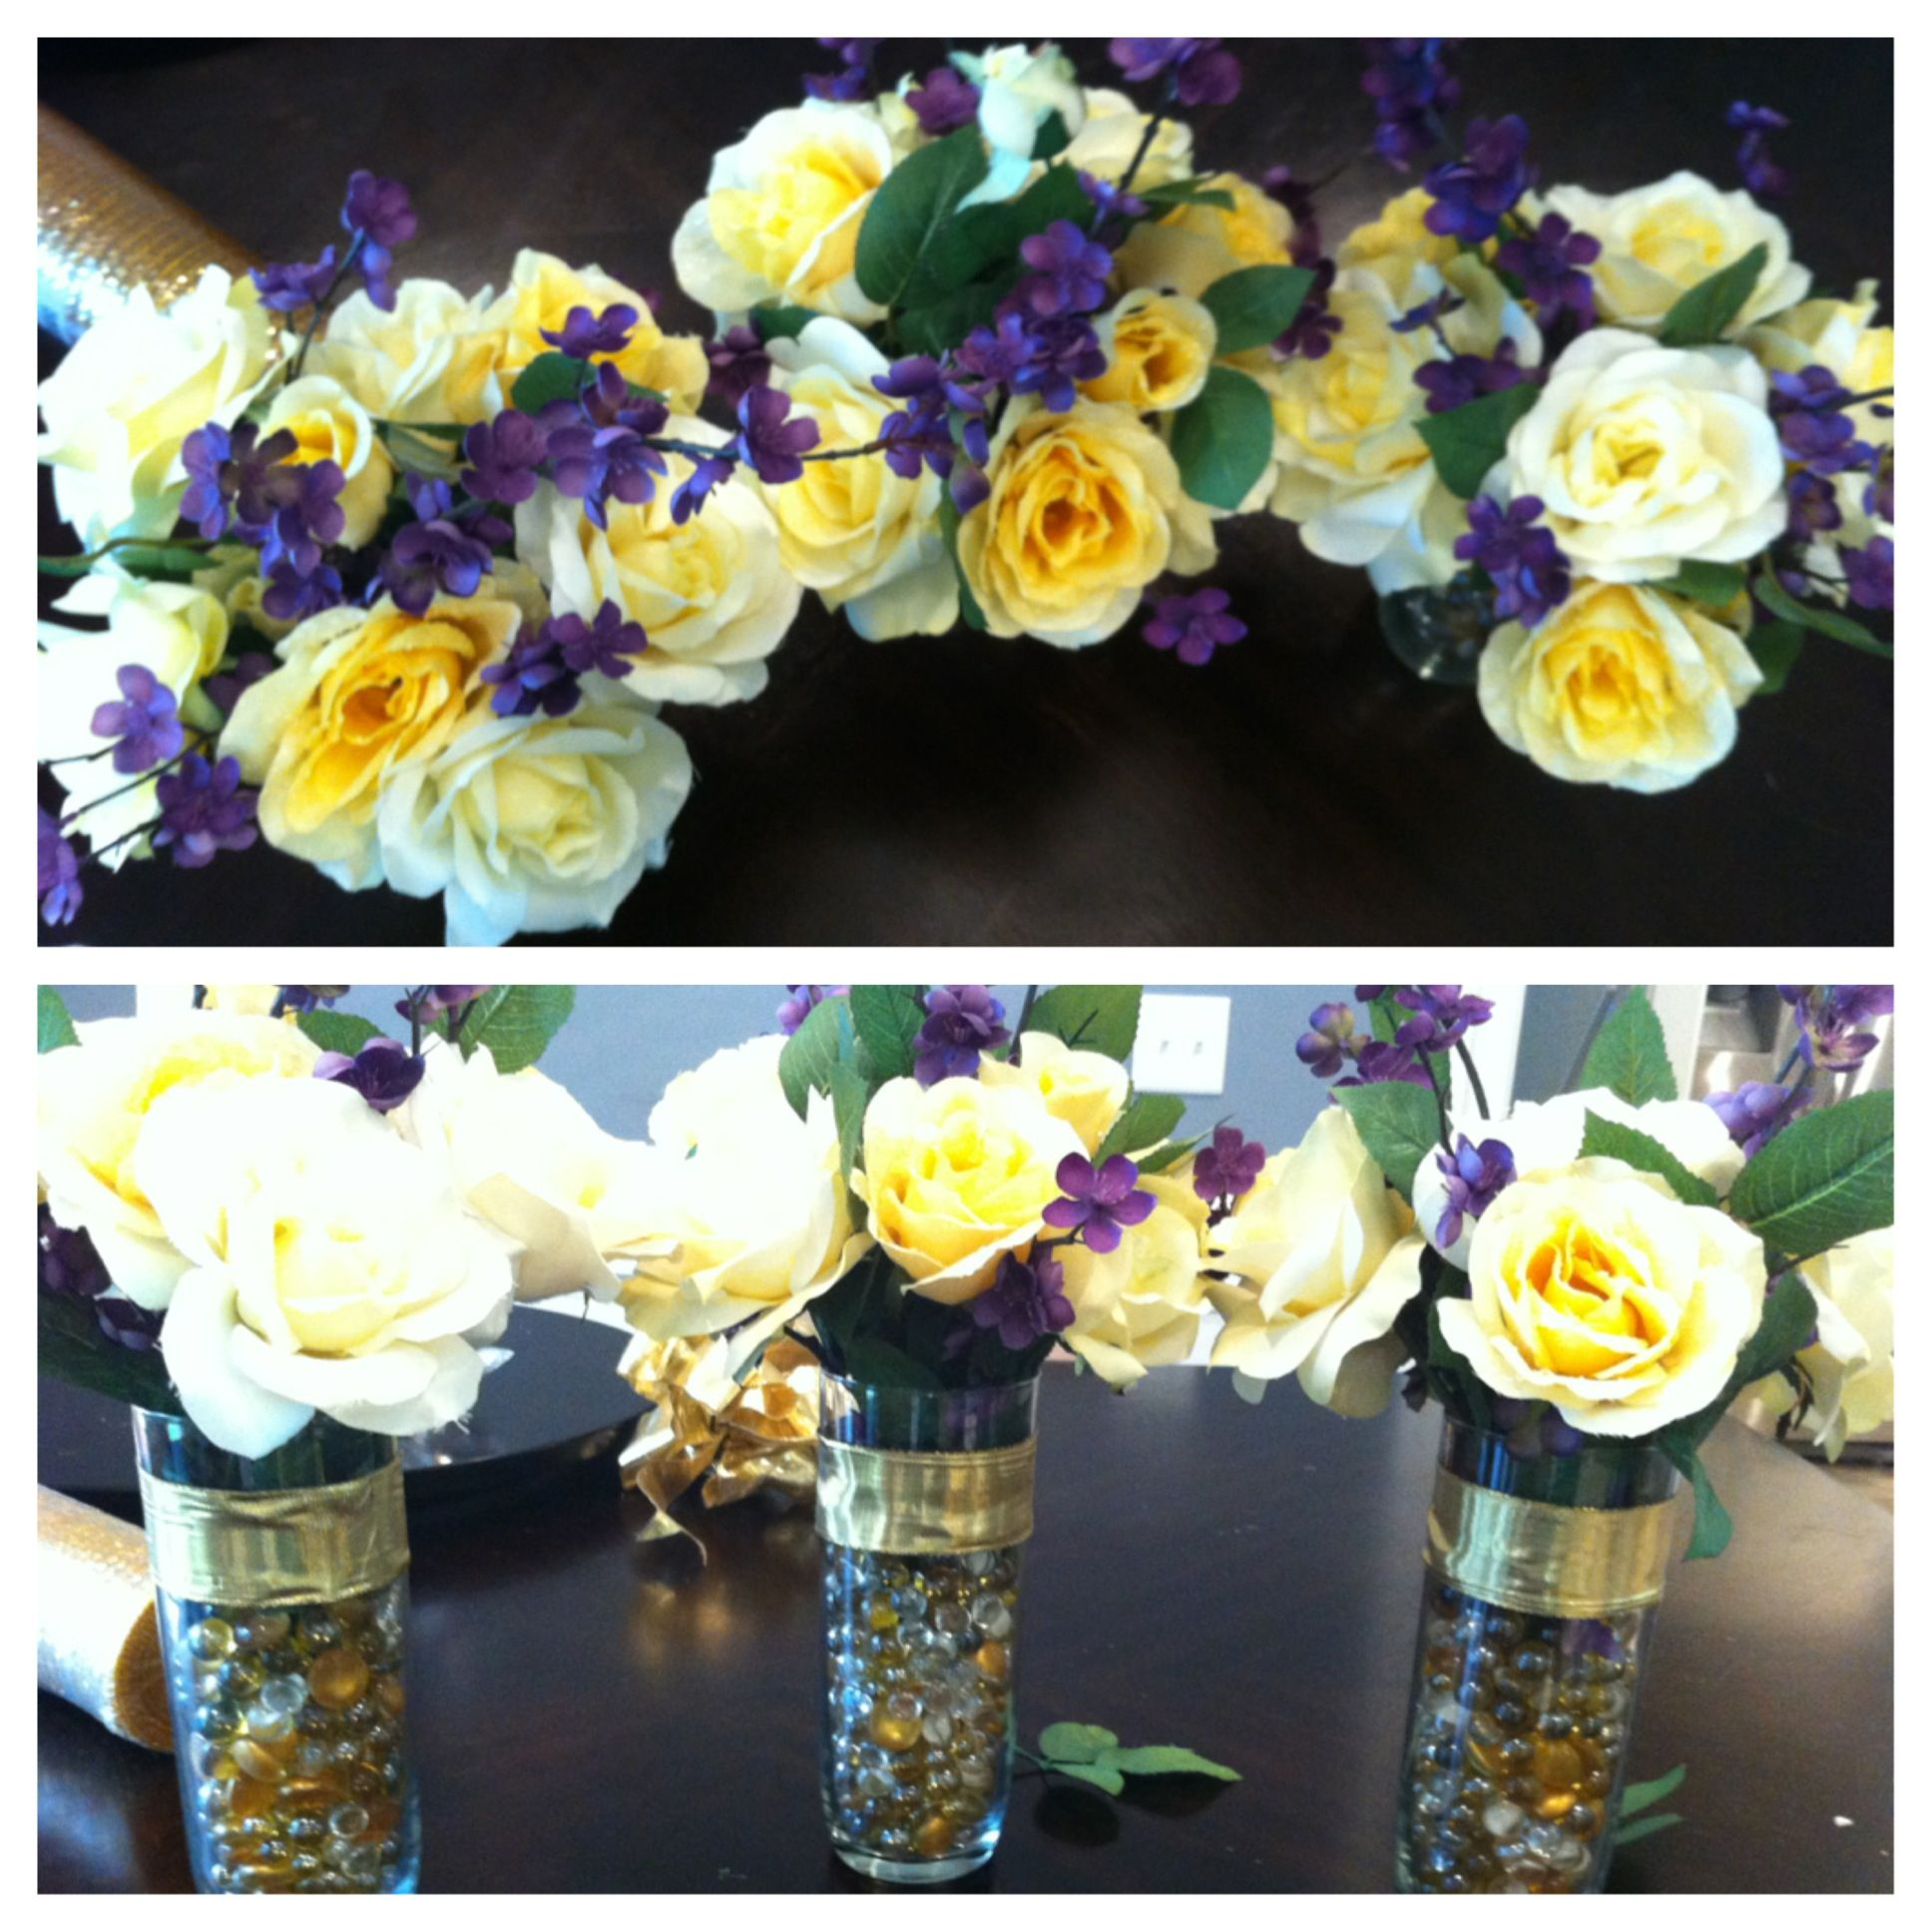 50th anniversary flower arrangement DIY #diy #flowers | Crafty ...